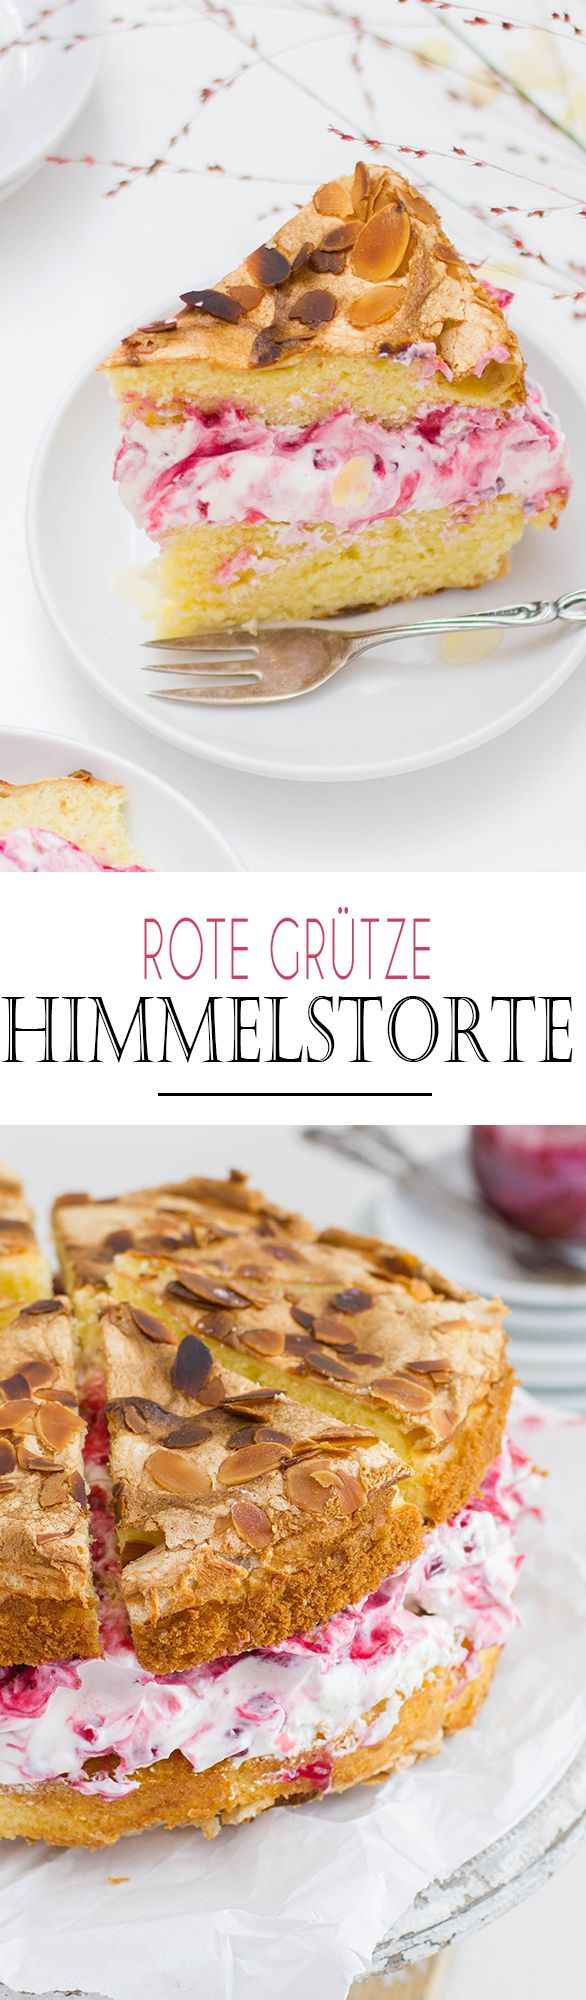 Berry Compott Almond Cake with Vanilla Cream and Meringue // Rote Grütze Himmelstorte